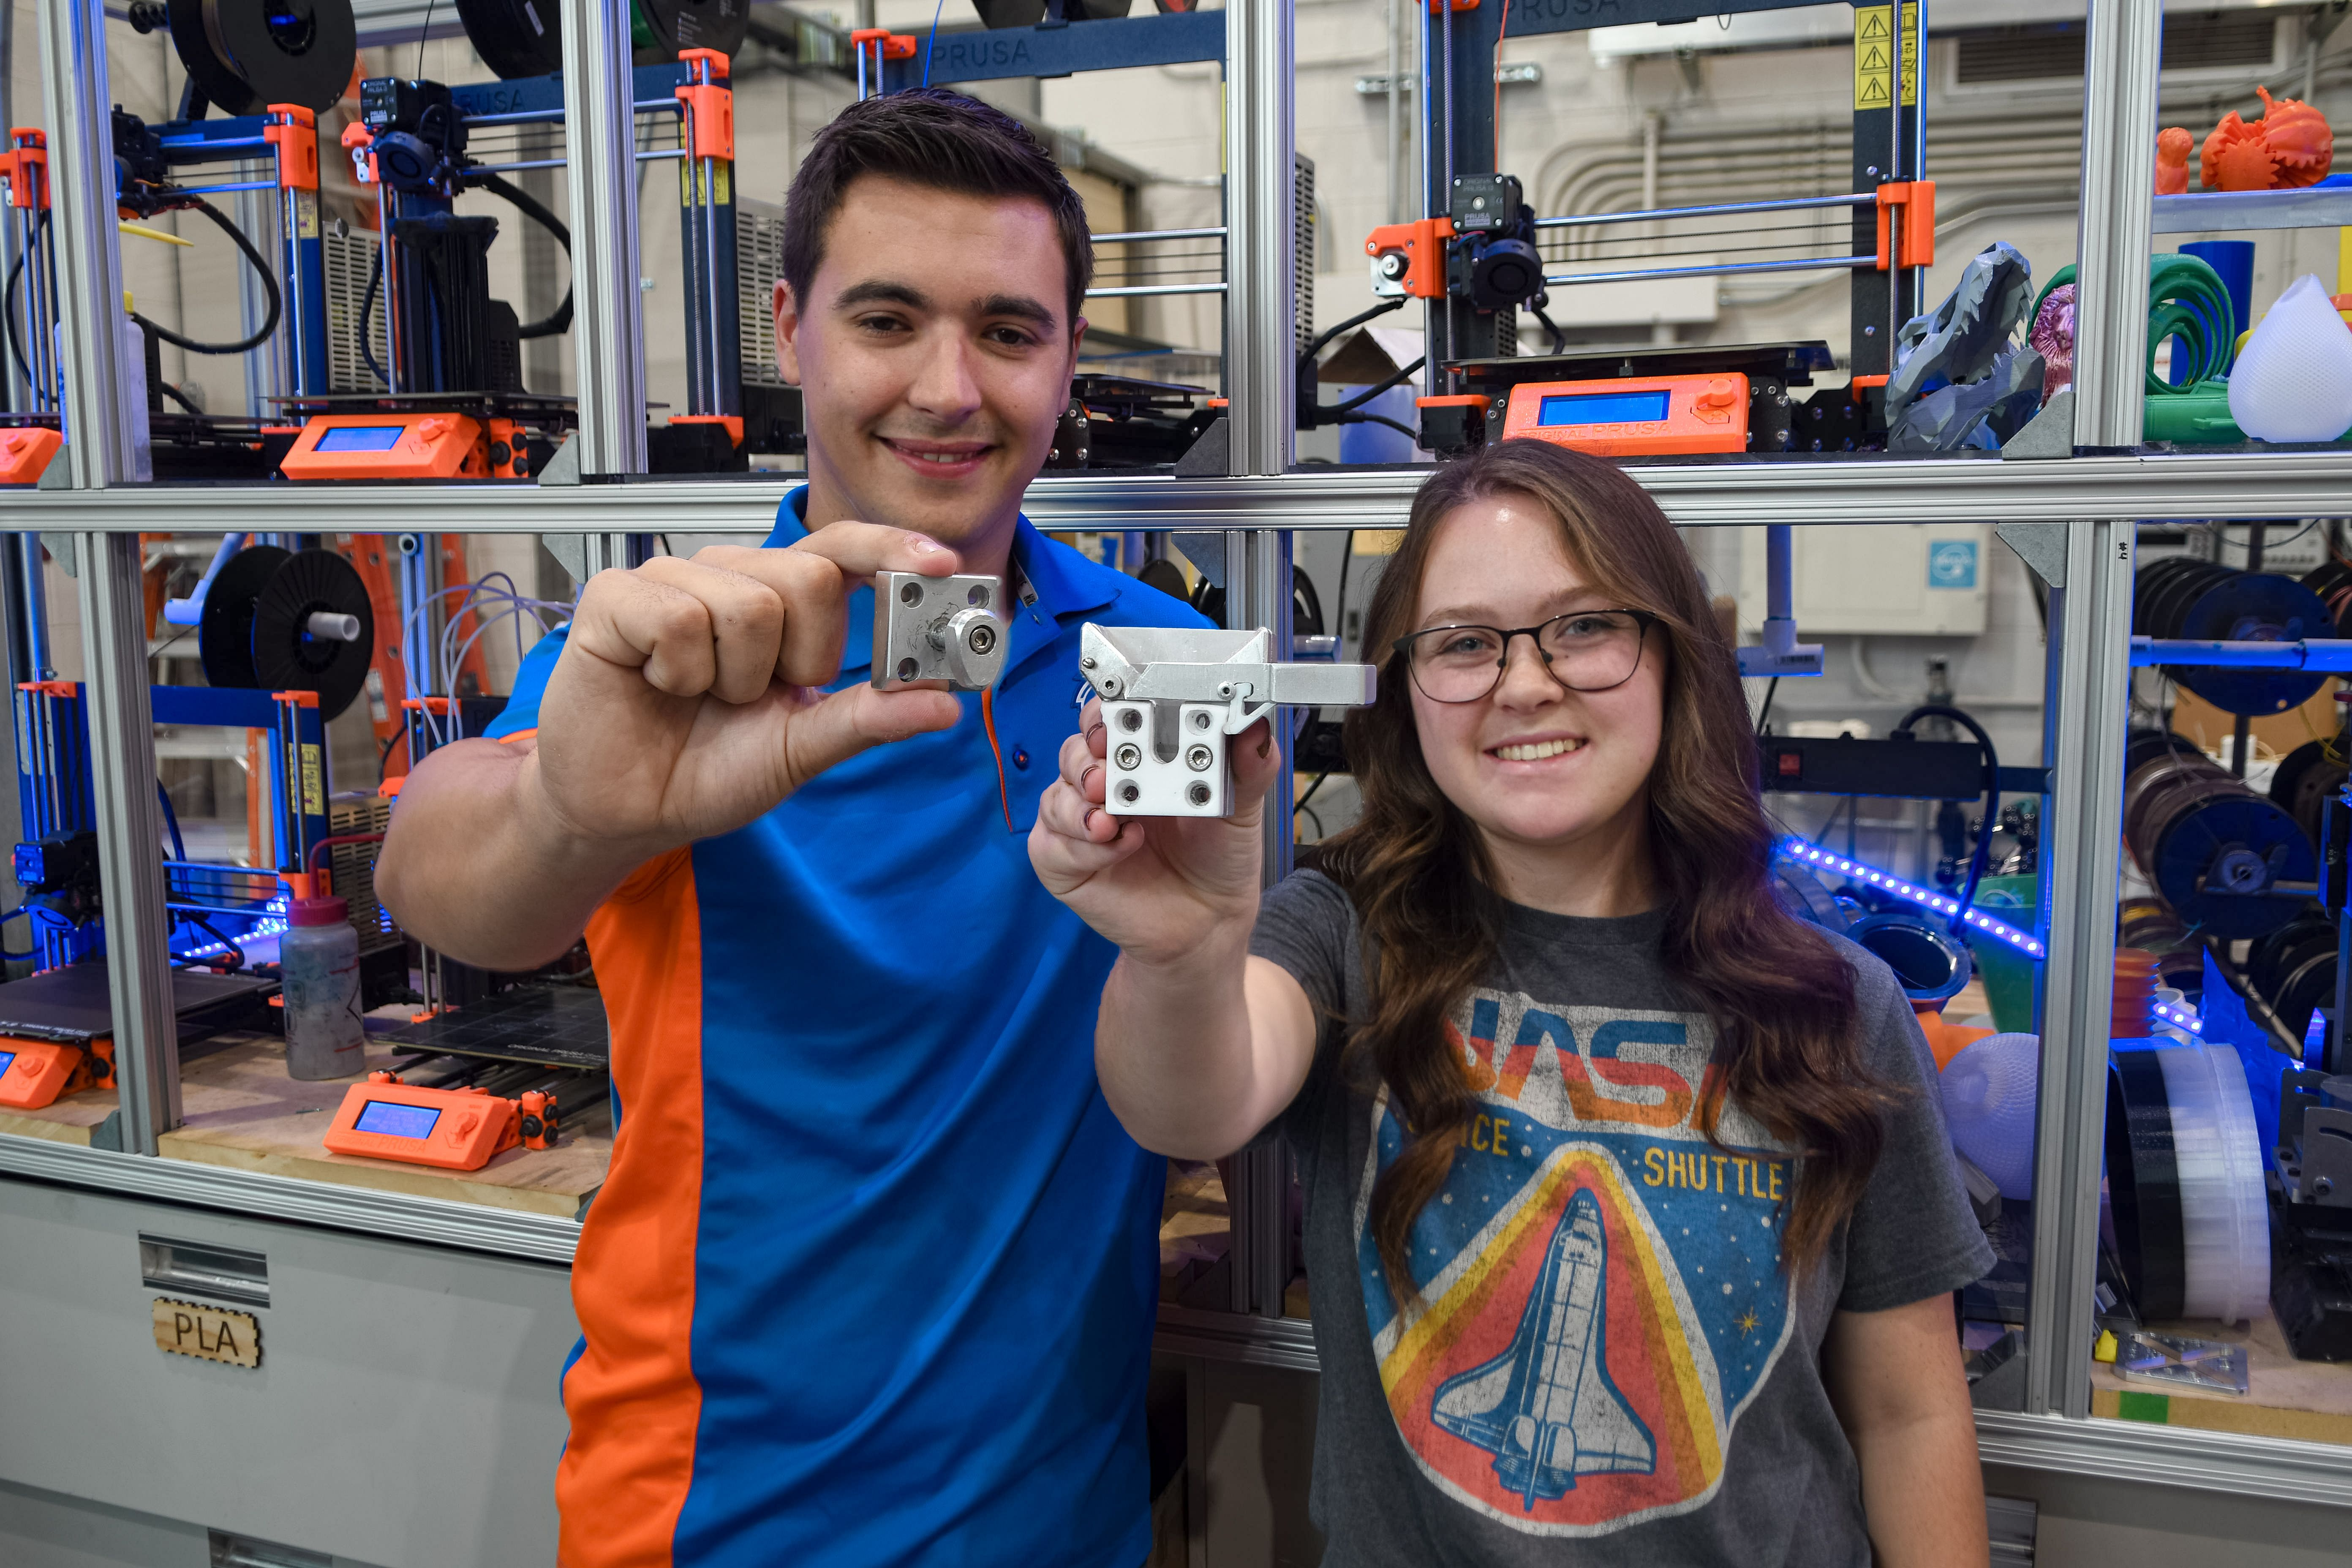 Two people in workshop holding 3D printed plastic pieces